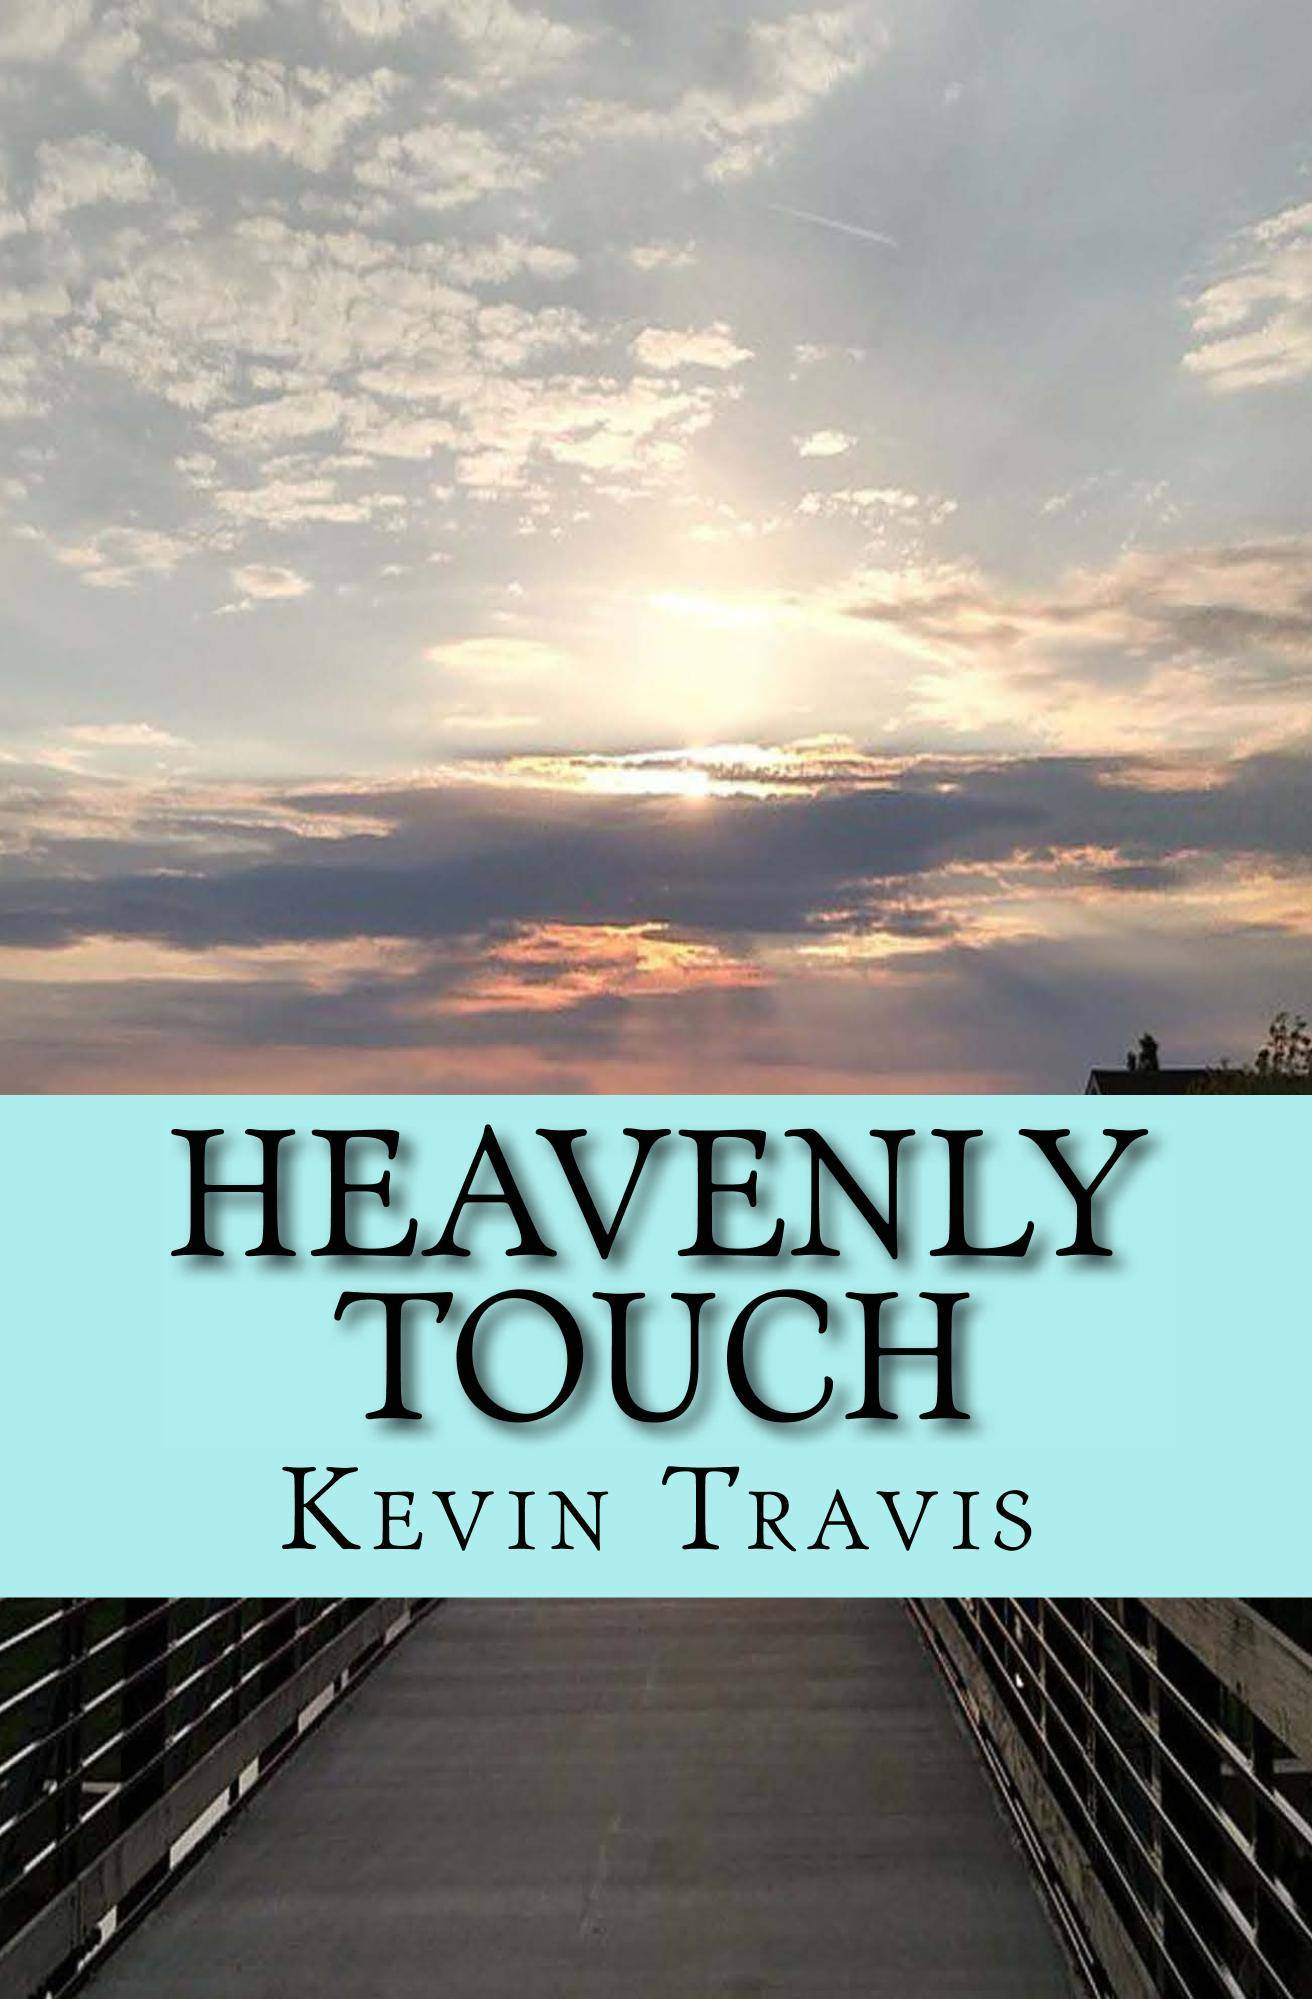 Heavenly Touch Kevin Travis